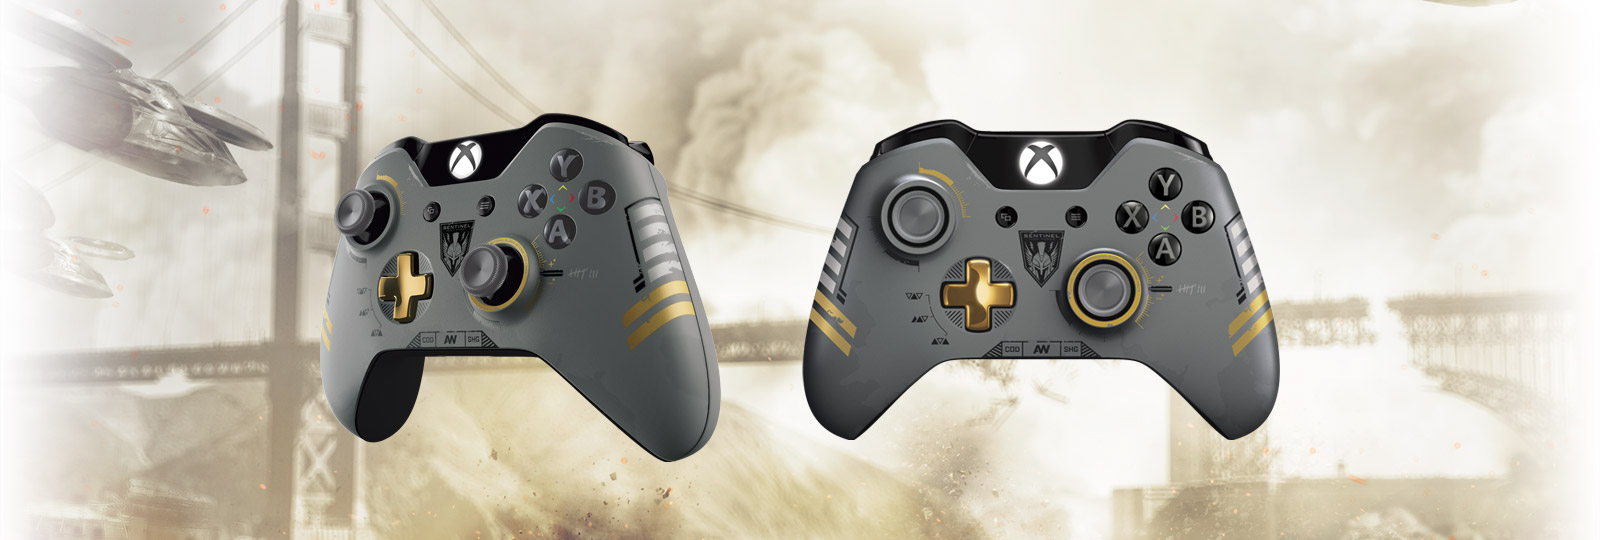 Xbox One Limited Edition Call of Duty: Advanced Warfare Wireless Controller.